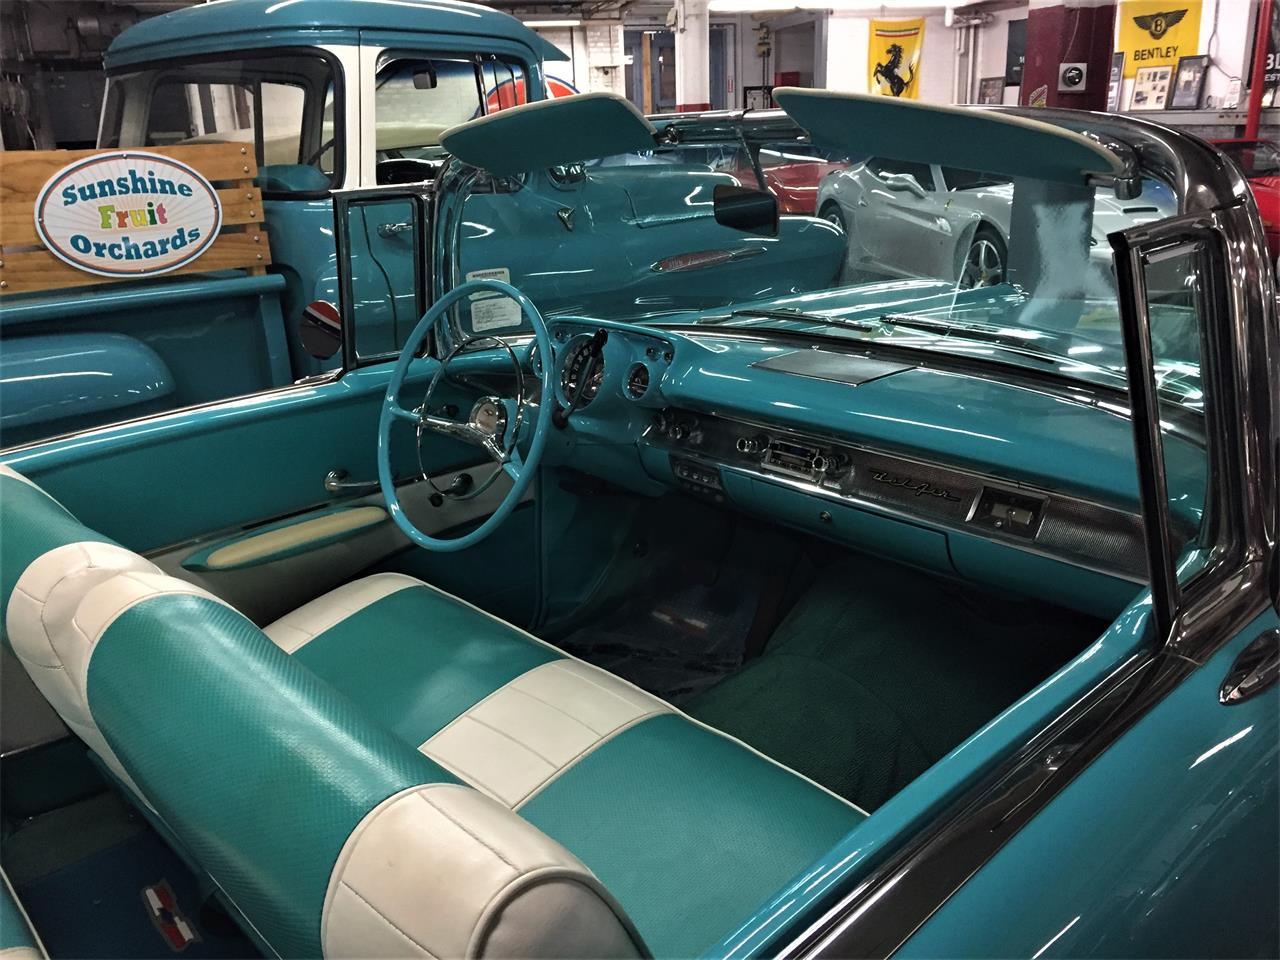 Large Picture of 1957 Chevrolet Bel Air located in Bridgeport Connecticut - $75,000.00 Offered by Black Horse Garage - KDHZ